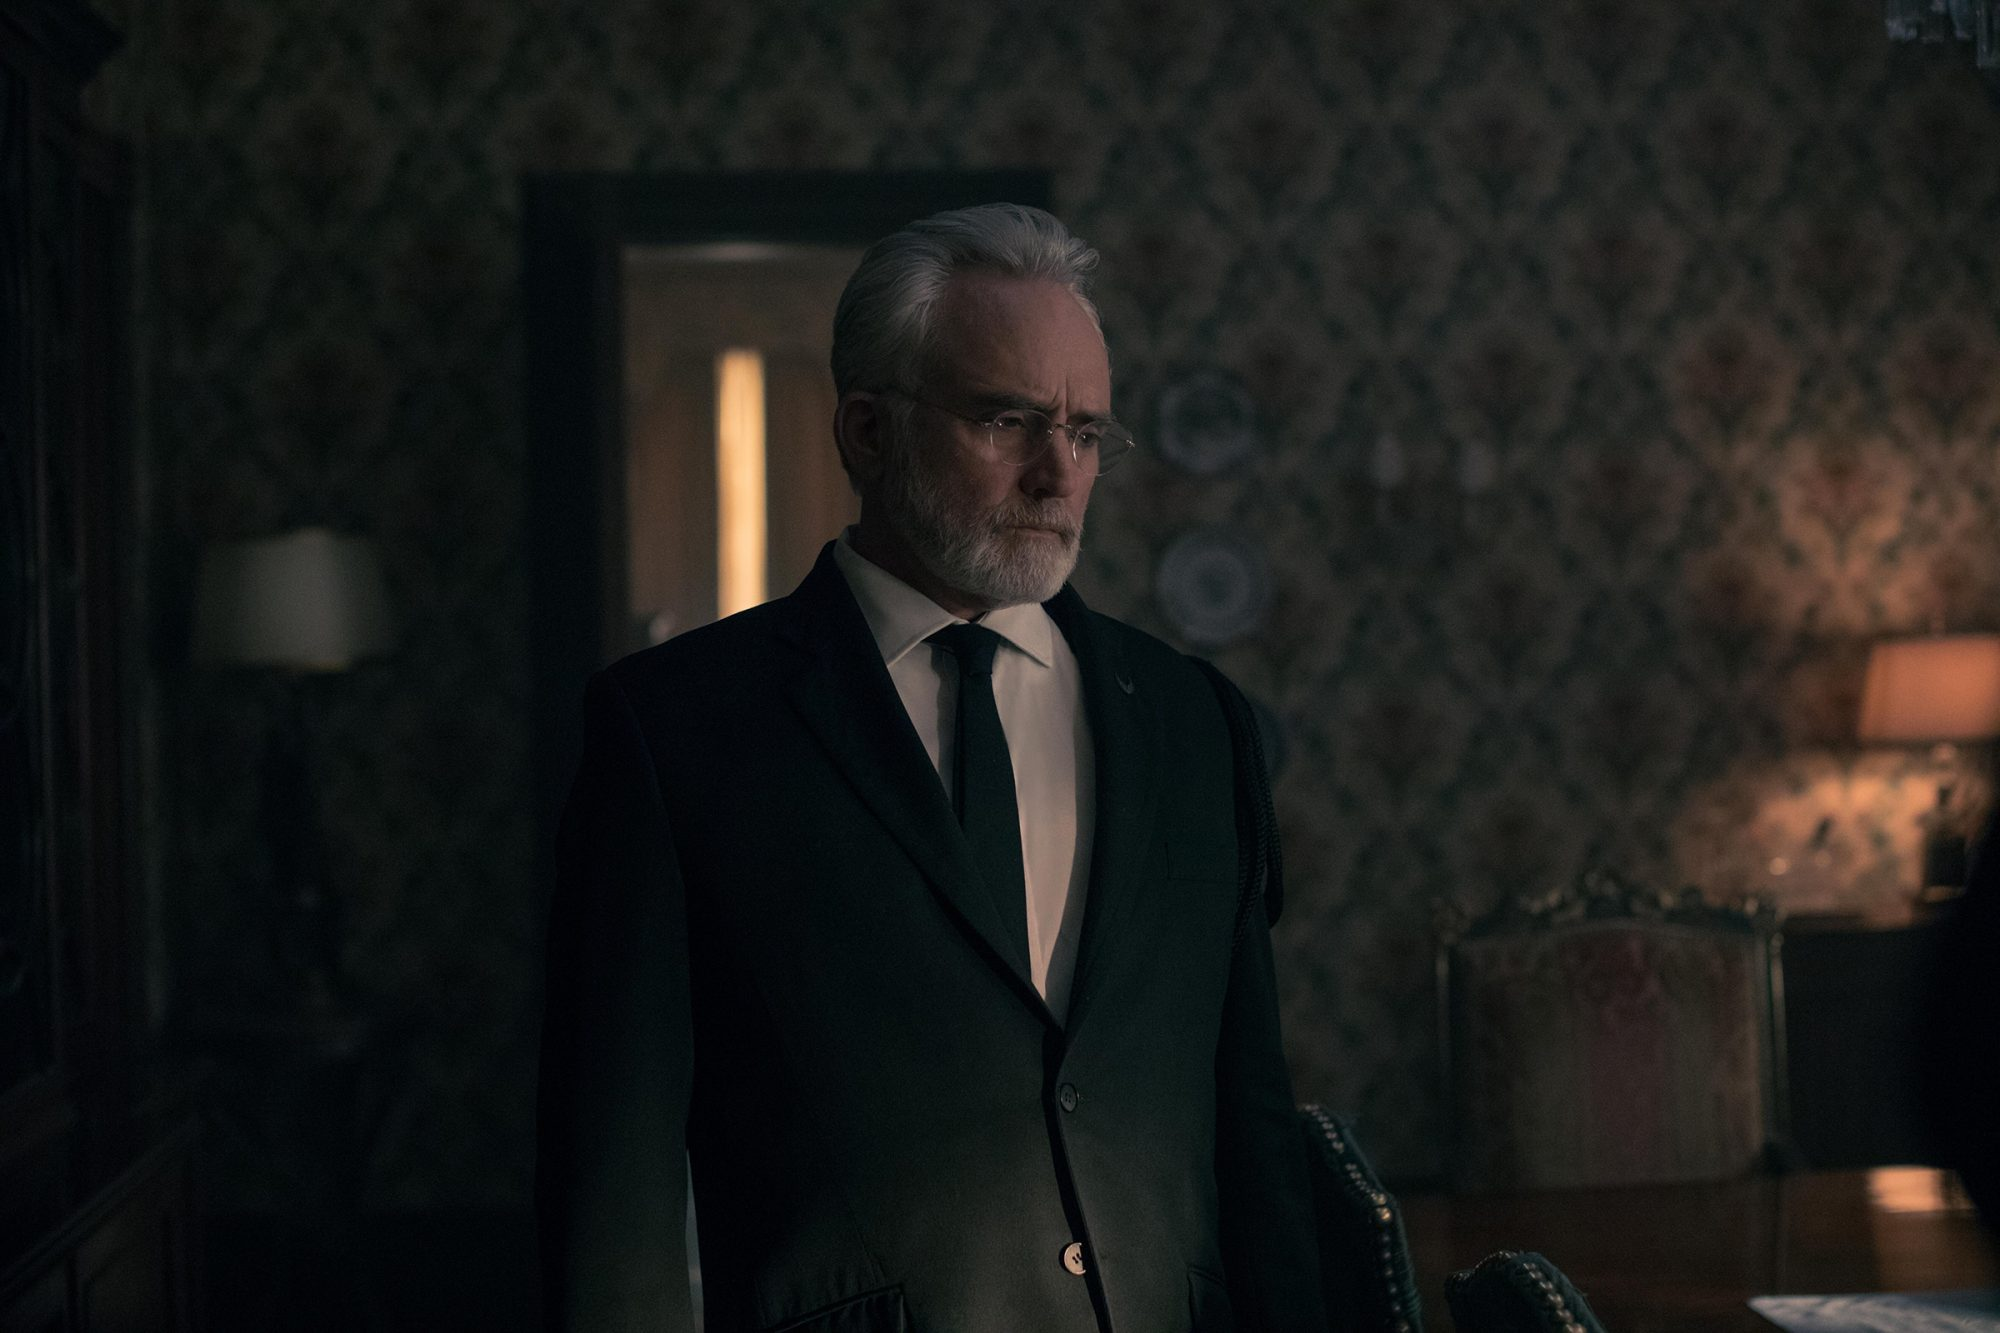 """The Handmaid's Tale -- """"Mayday"""" - Episode 313 -- With her plan in place, June reaches the point of no return on her bold strike against Gilead and must decide how far she's willing to go. Serena Joy and Commander Waterford attempt to find their way forward in their new lives. Joseph (Bradley Whitford),"""